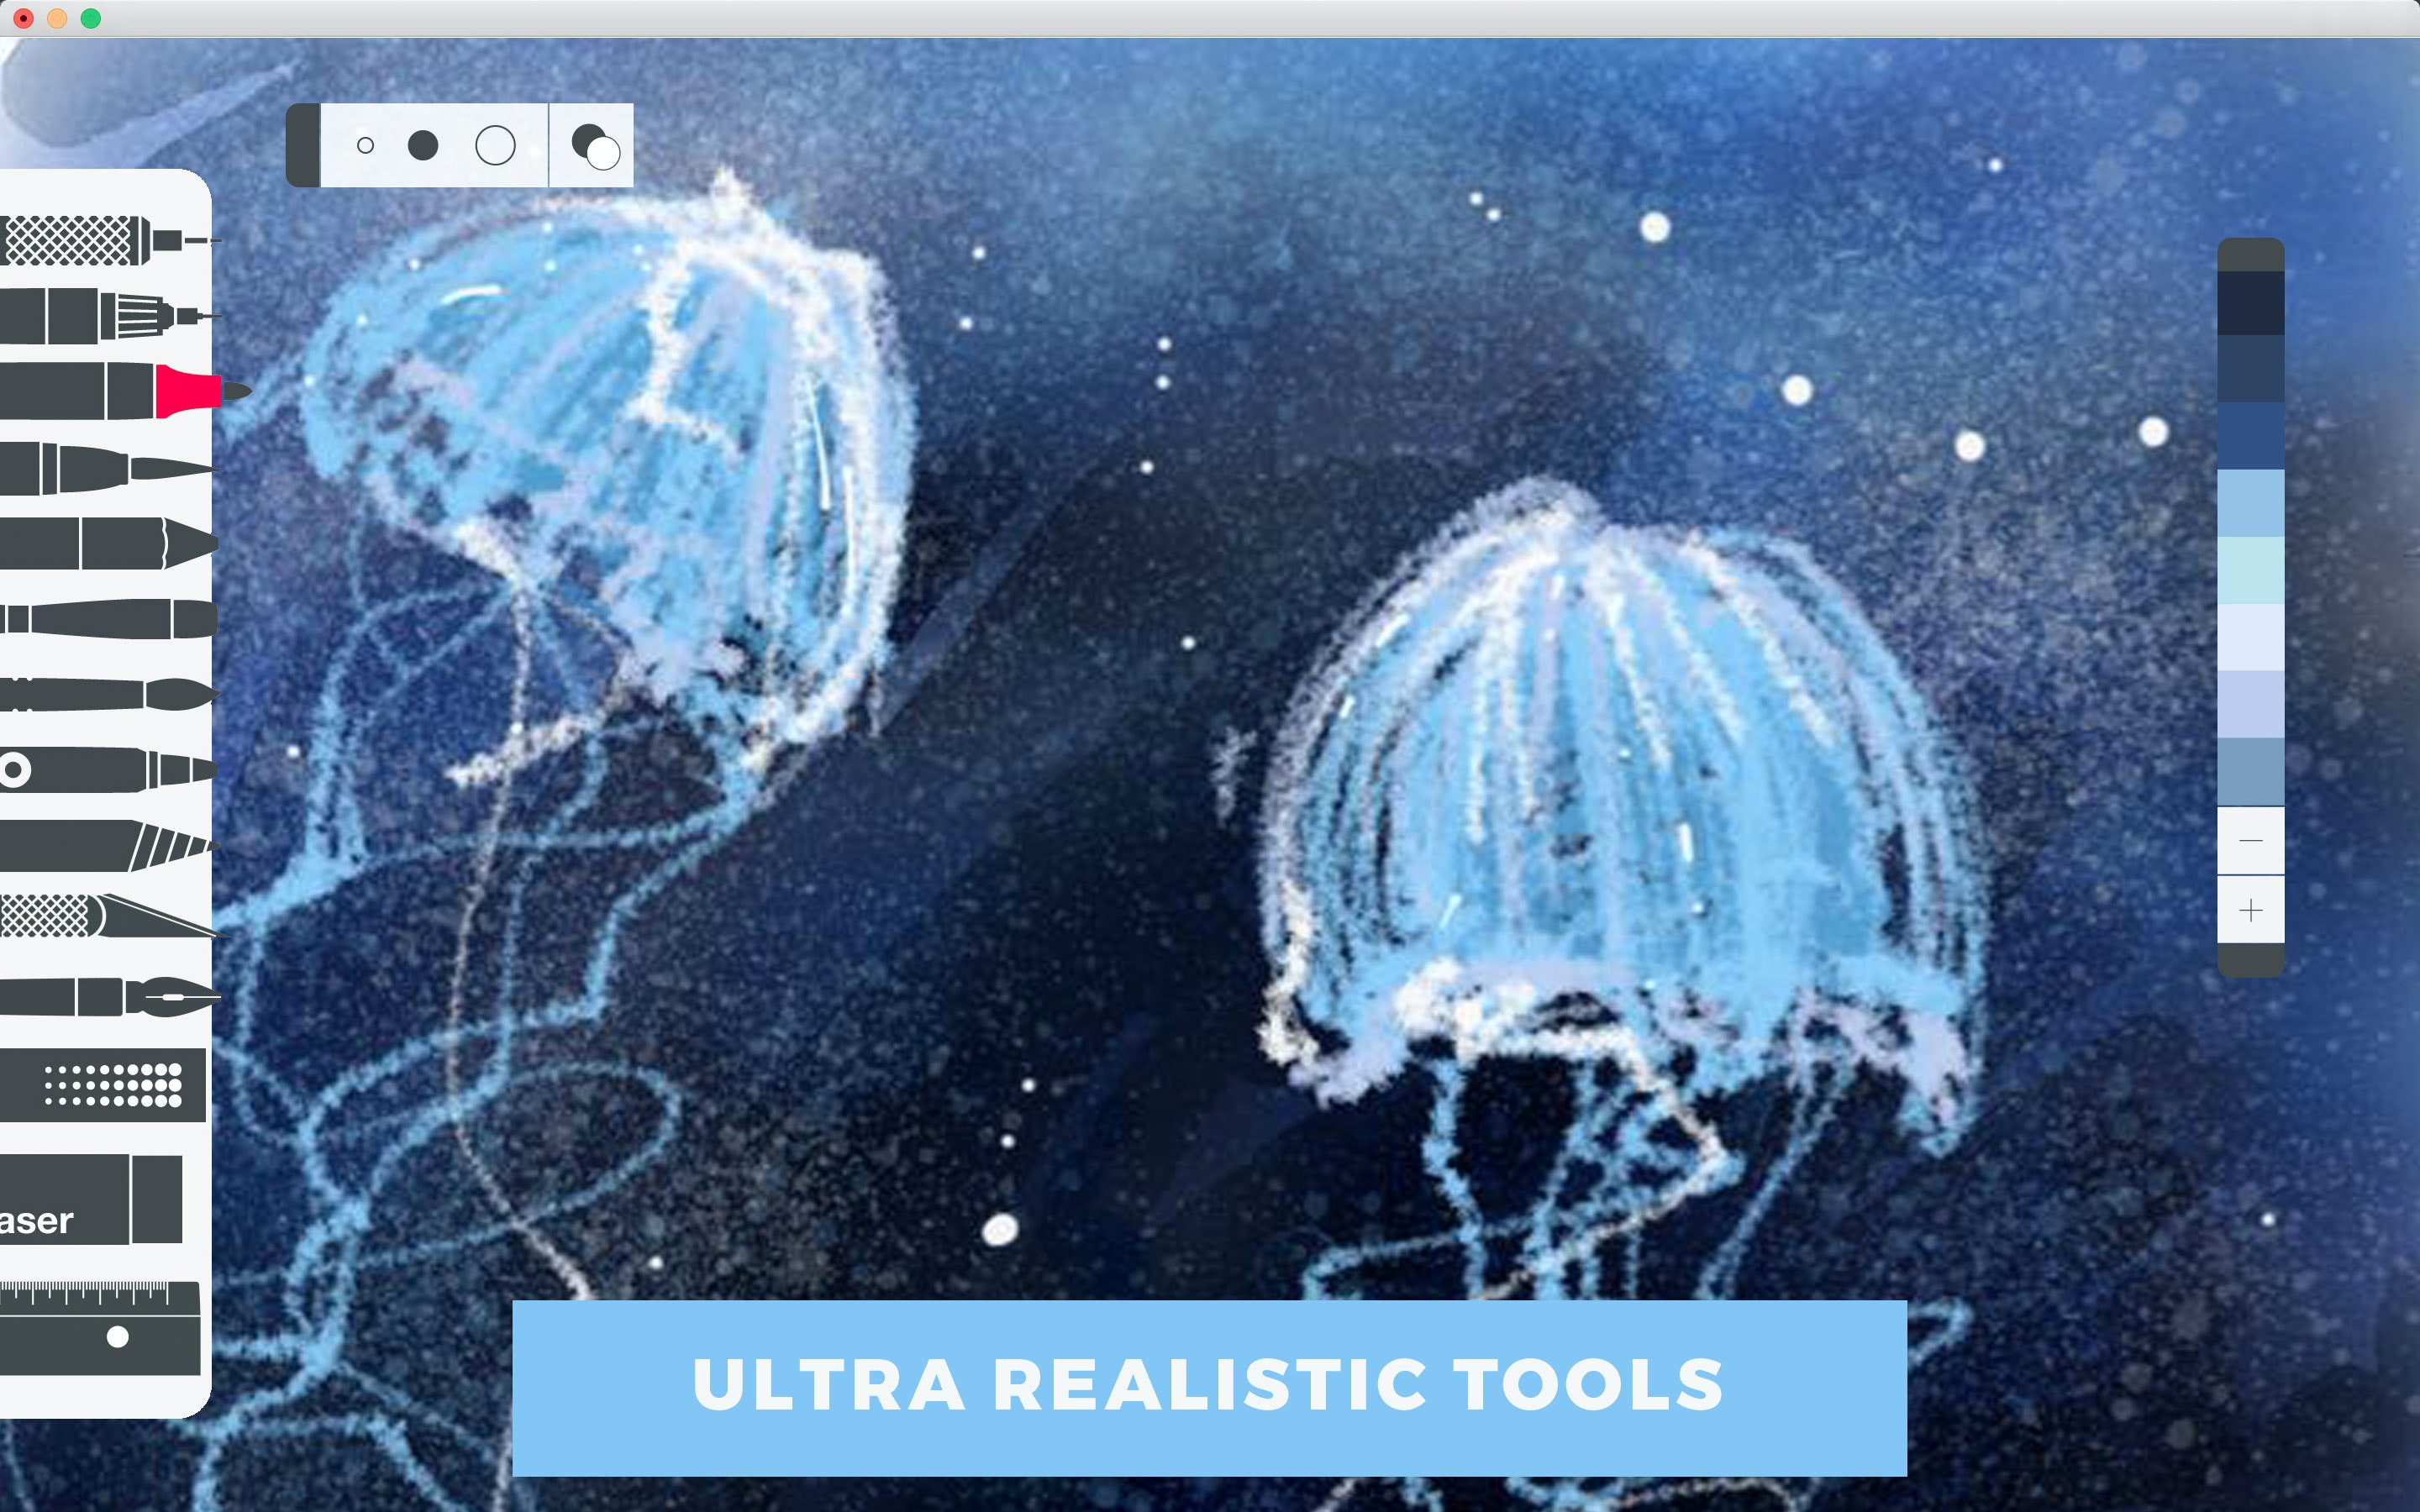 Ultra realistic tools for painting, drawing, and sketching.